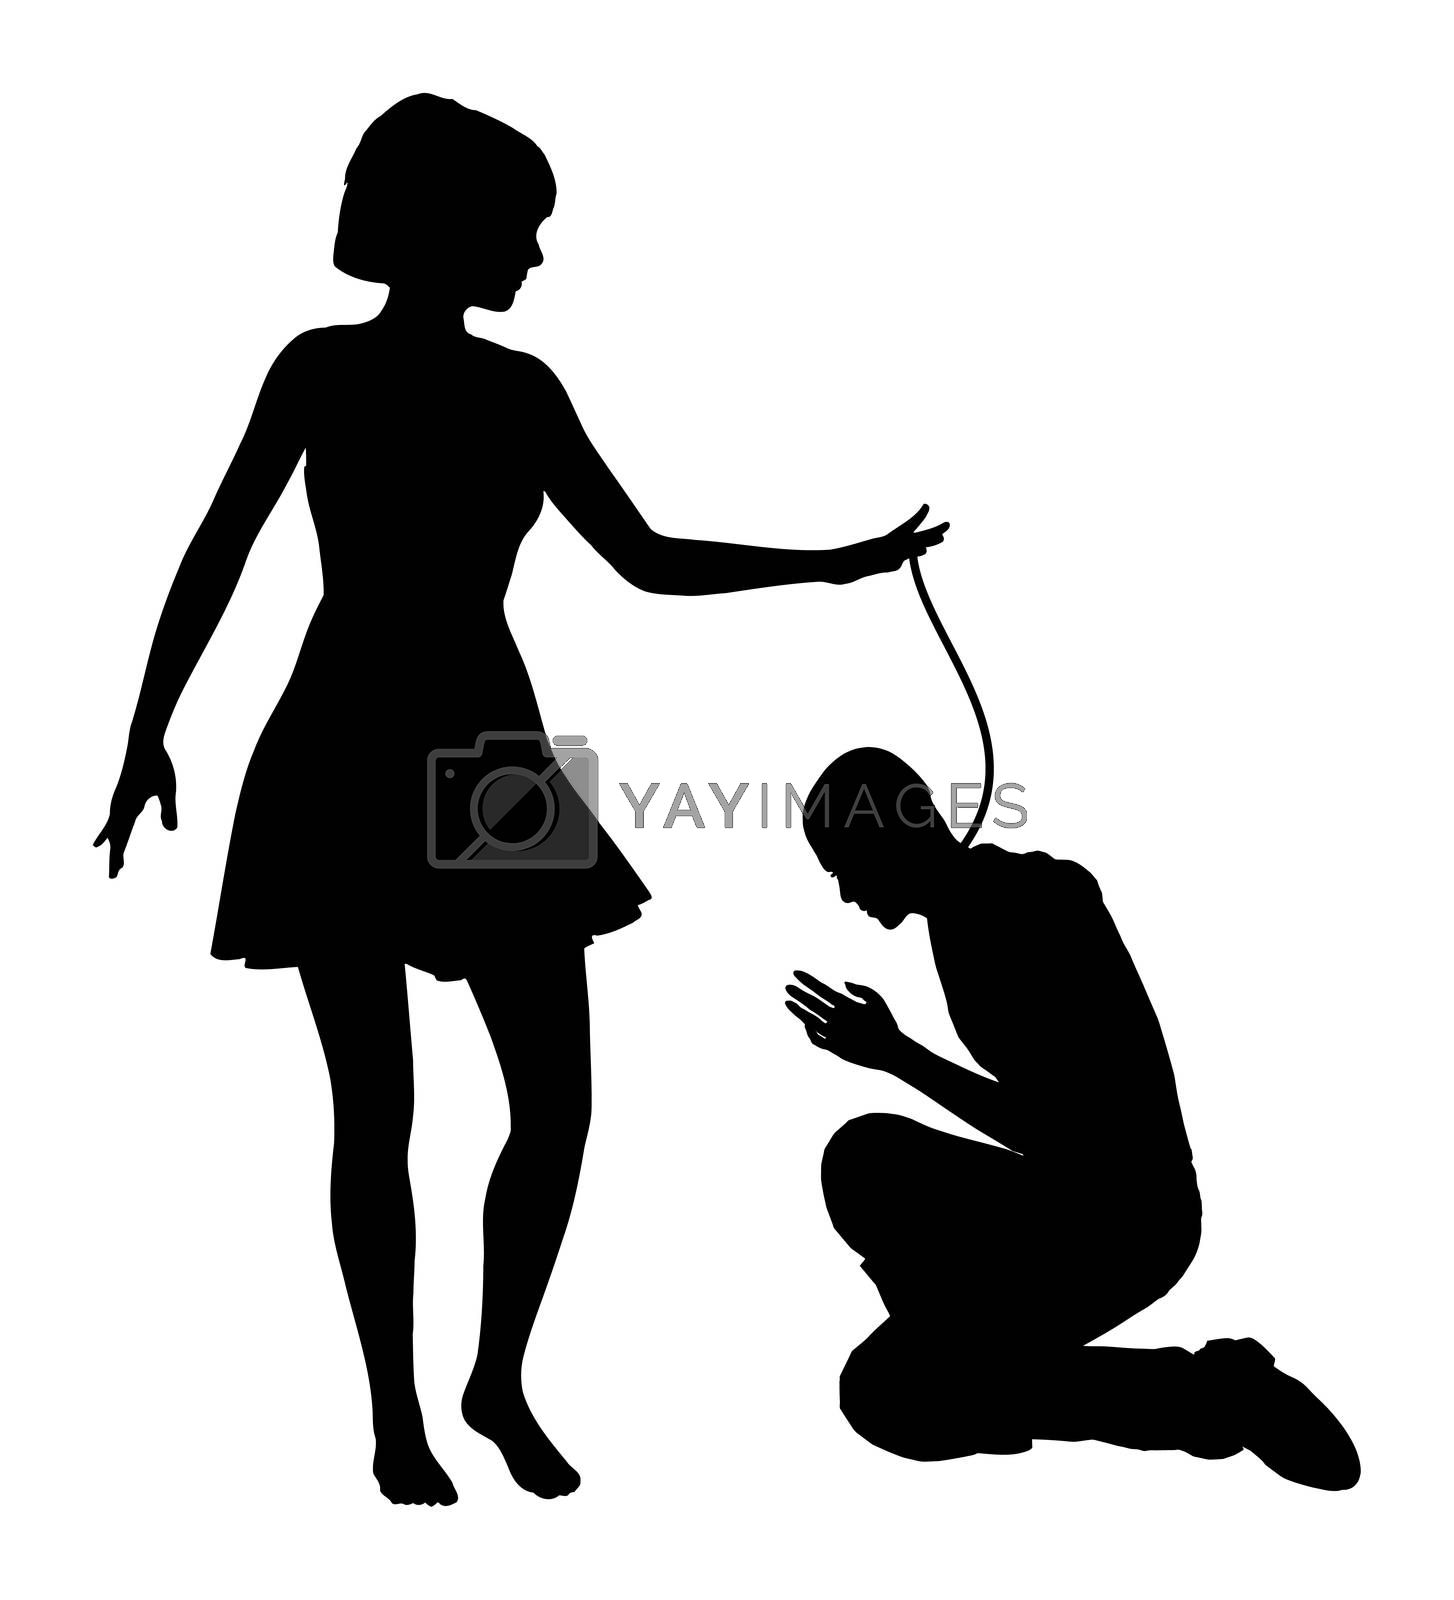 Dominated Man. Woman treating man like slave, concept of oppression and domination